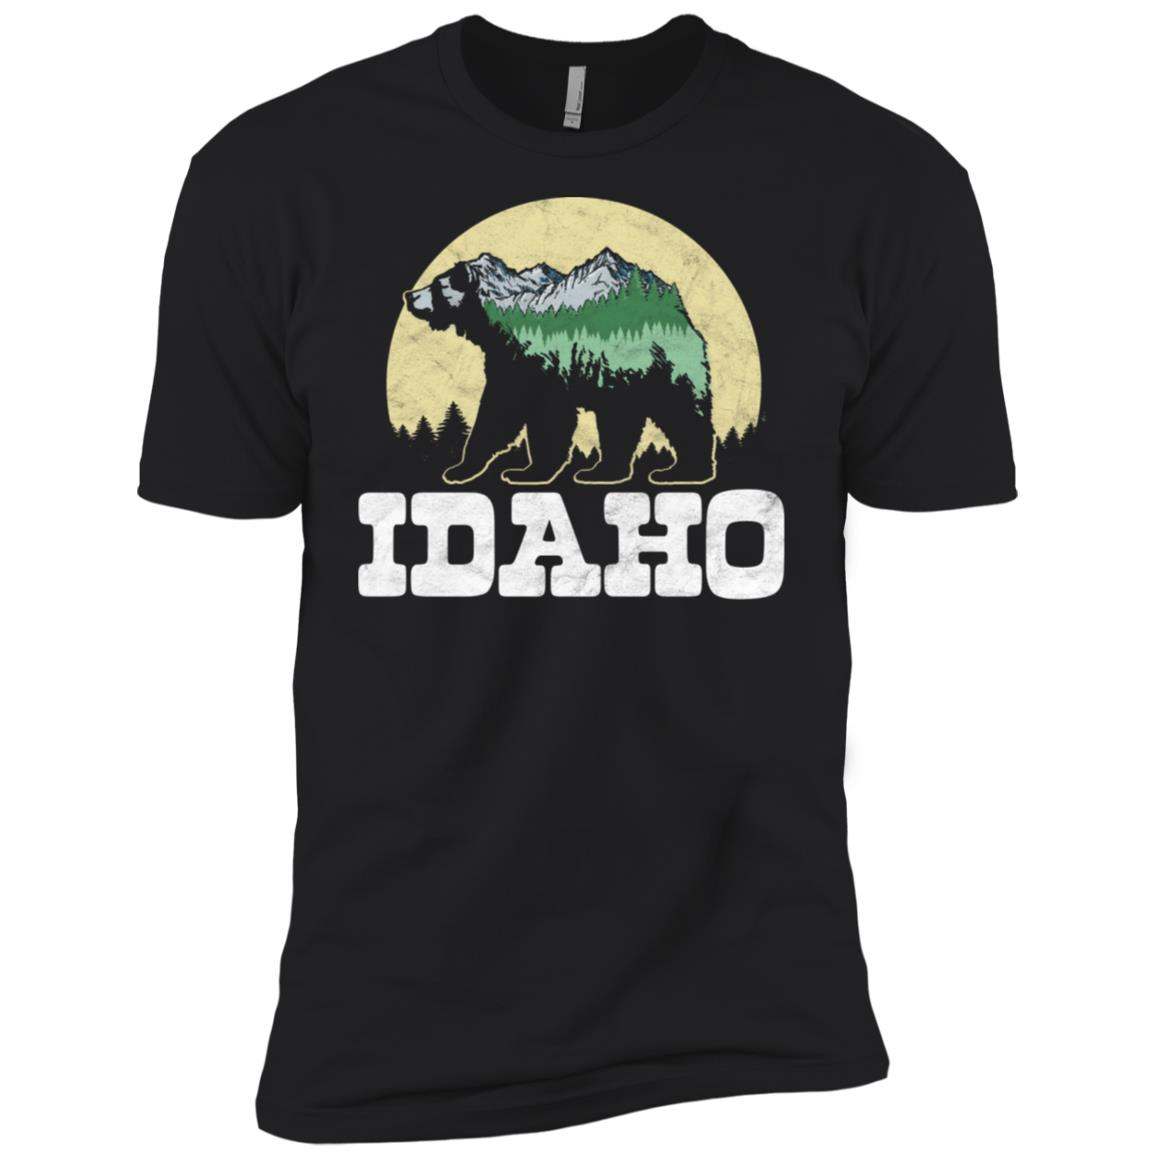 Idaho Bear Sketch Mountains & Trees Tee Men Short Sleeve T-Shirt